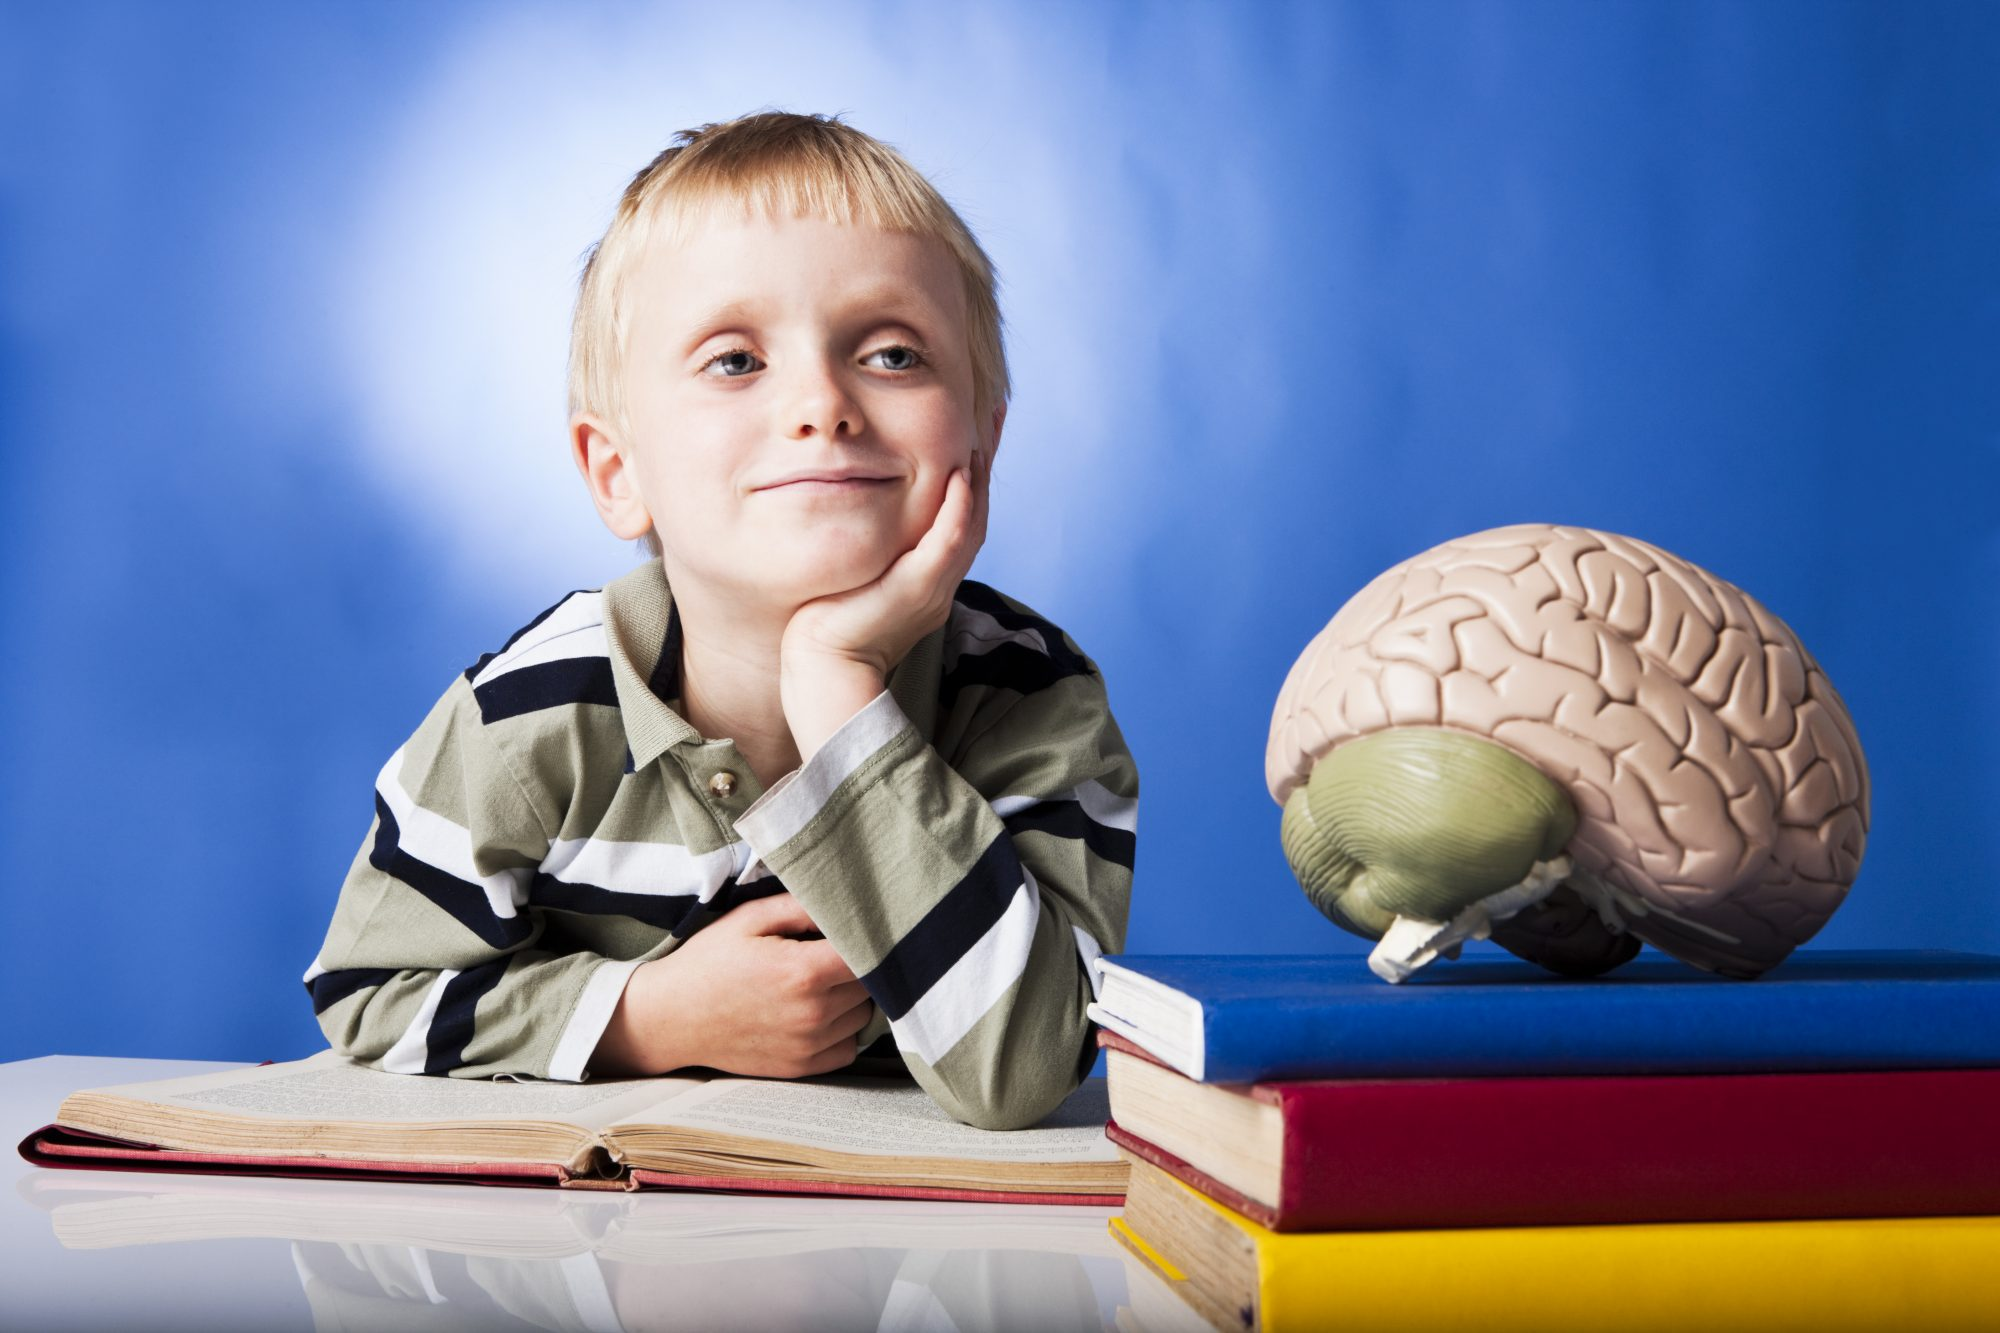 Child, Books, and Brain Model